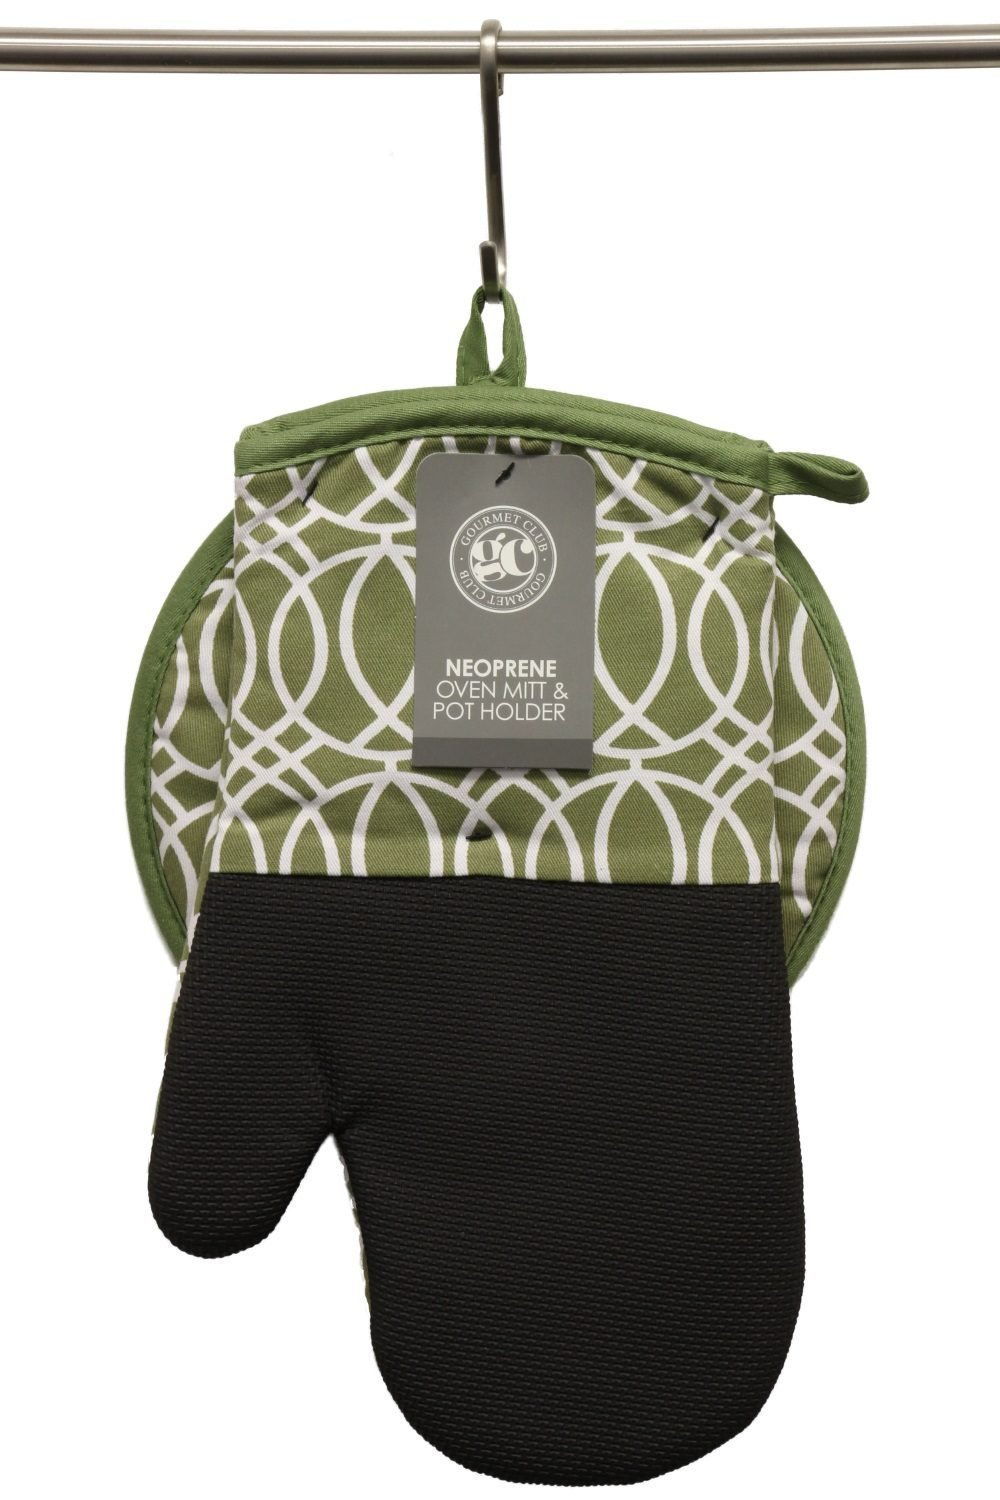 Oven Mitt and Potholder Set - Pot Holders and Oven Mitts Protect Hands and Surfaces - Kitchen Essentials Ideal for Cooking, Baking - Heat Resistant to 500F - Cotton w/Neoprene Silicone for Easy Grip